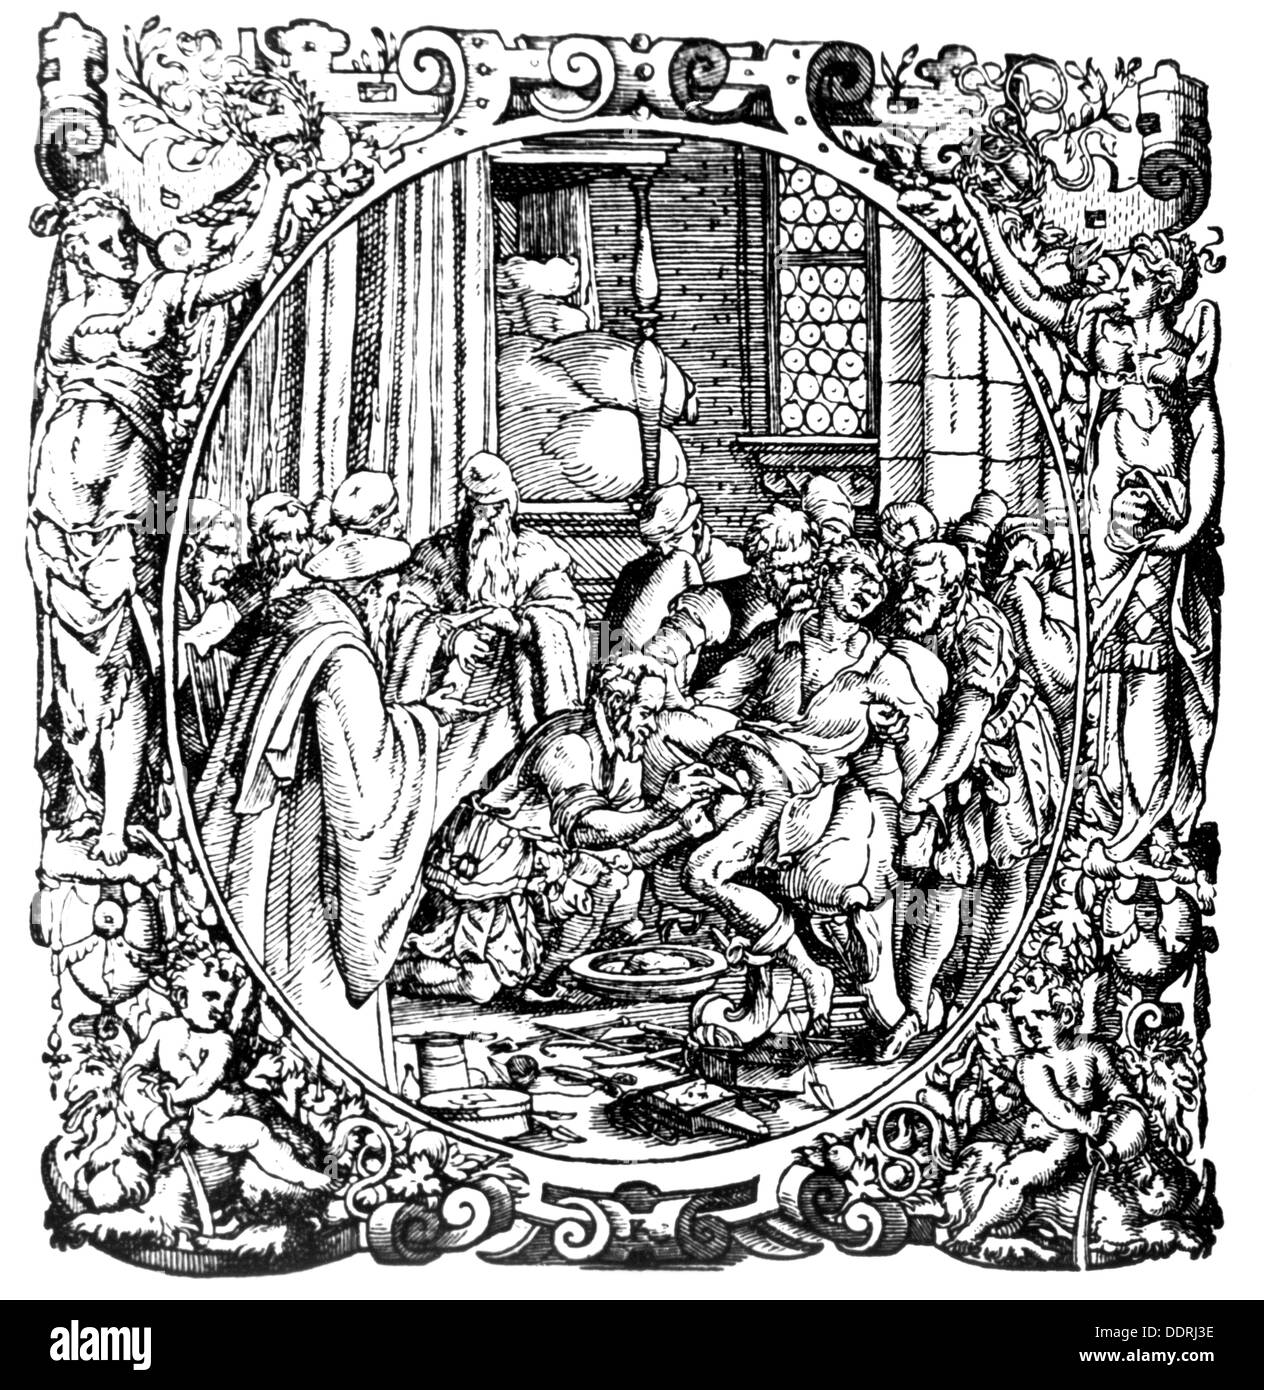 medicine, surgery, lithotomy, woodcut by Jost Amman (1539 - 1591), 16th century, 16th century, graphic, graphics, undergo surgery, need surgery, medical doctor, medic, medics, doc, doctors, docs, physician, physicians, assistant, assistants, helper, helpers, patient, patients, half length, standing, treatment, treatments, treat, treating, doctor, doctoring, operating, operate, knife, knives, cutting, cut, cuts, bladder, bladders, bladder stone, urinary calculus, bladder stones, urinary calculusses, urinary stone, urinary stones, pain, frame, frames, ornament, o, Additional-Rights-Clearences-NA - Stock Image